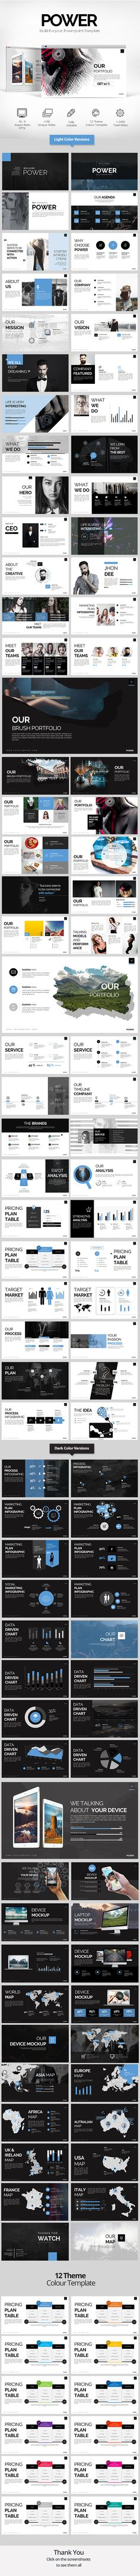 Buy Power Keynote Templates by Jhon_D_Atom on GraphicRiver. Power Keynote Presentation template is perfect for your impressive style presentations and also flexible to corporate. Presentation Design Template, Ppt Design, Presentation Layout, Slide Design, Business Presentation, Layout Design, Graphic Design, Portfolio Presentation, Creative Powerpoint Templates